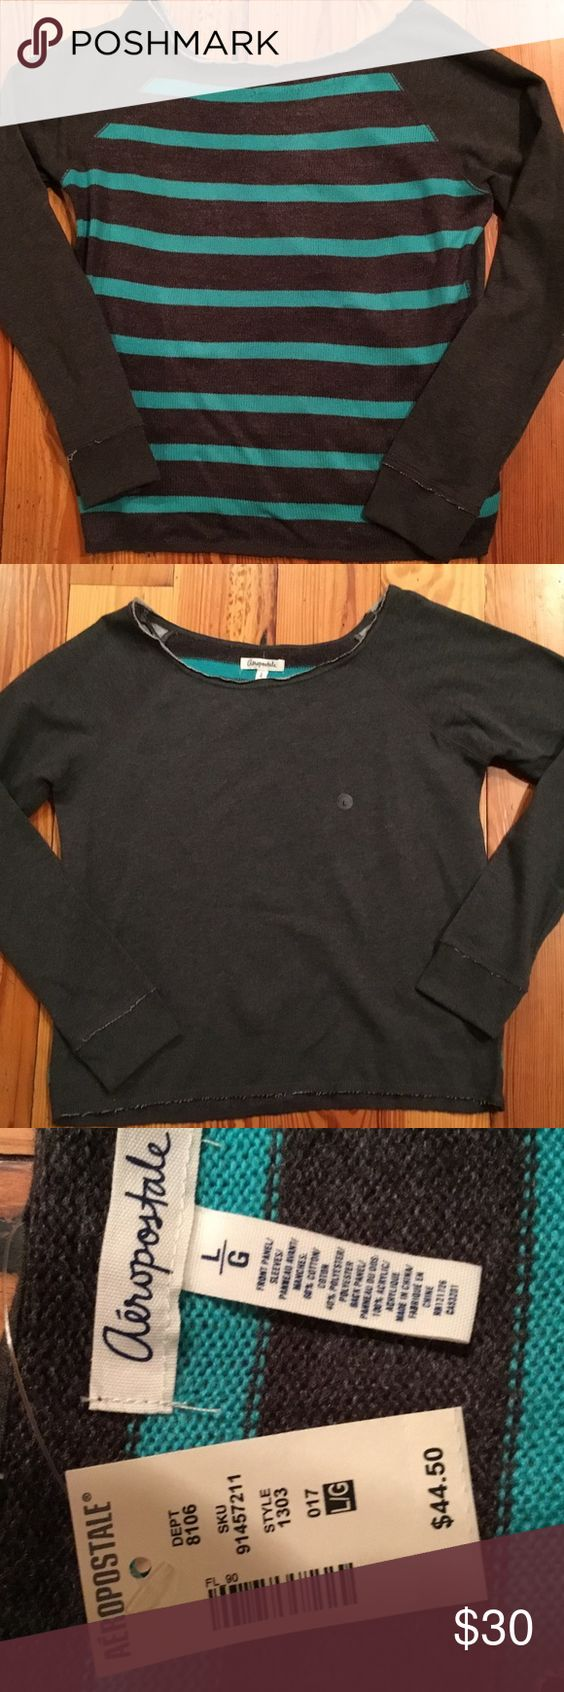 NWT FUN AEROPOSTALE SWEATER NWT AEROPOSTALE SWEATER. This is a really cute and fun top. The front is picture 2, a dark charcoal grey sweatshirt type material, the back is picture 1 a pretty teal and charcoal grey strip sweater. IN BRAND NEW NEVER WORN CONDITION. From my CLEAN NON SMOKING HOME. Check out my other items as I am cleaning out closets and listing a lot of good stuff. I DO BUNDLE. Thanks for looking.😊 Aeropostale Sweaters Cardigans